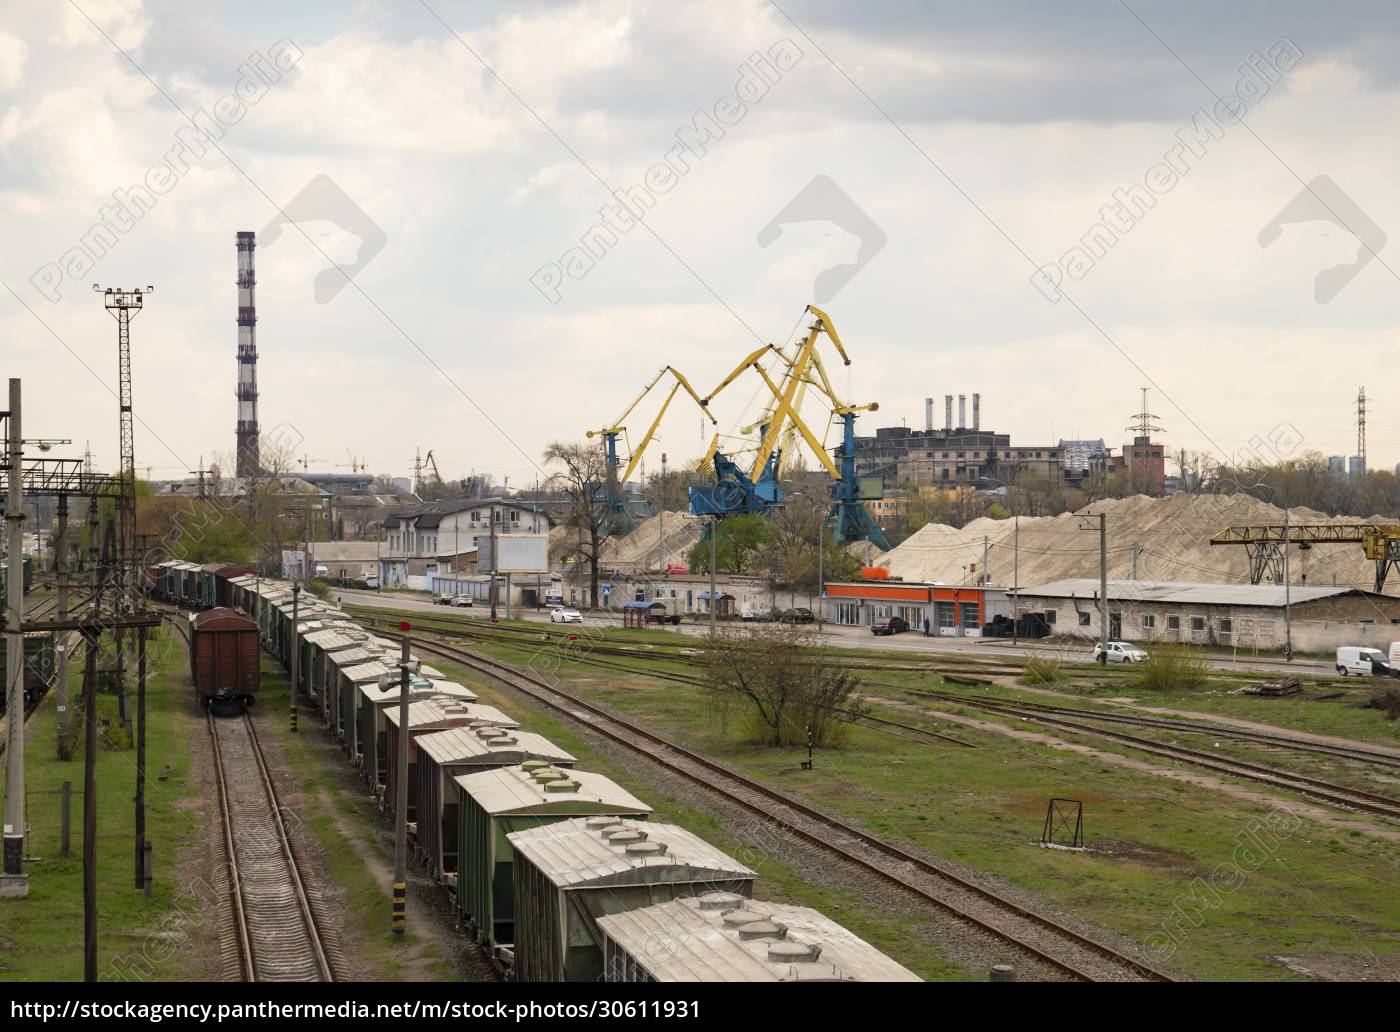 railroad, infrastructure, -, freight, train, station - 30611931